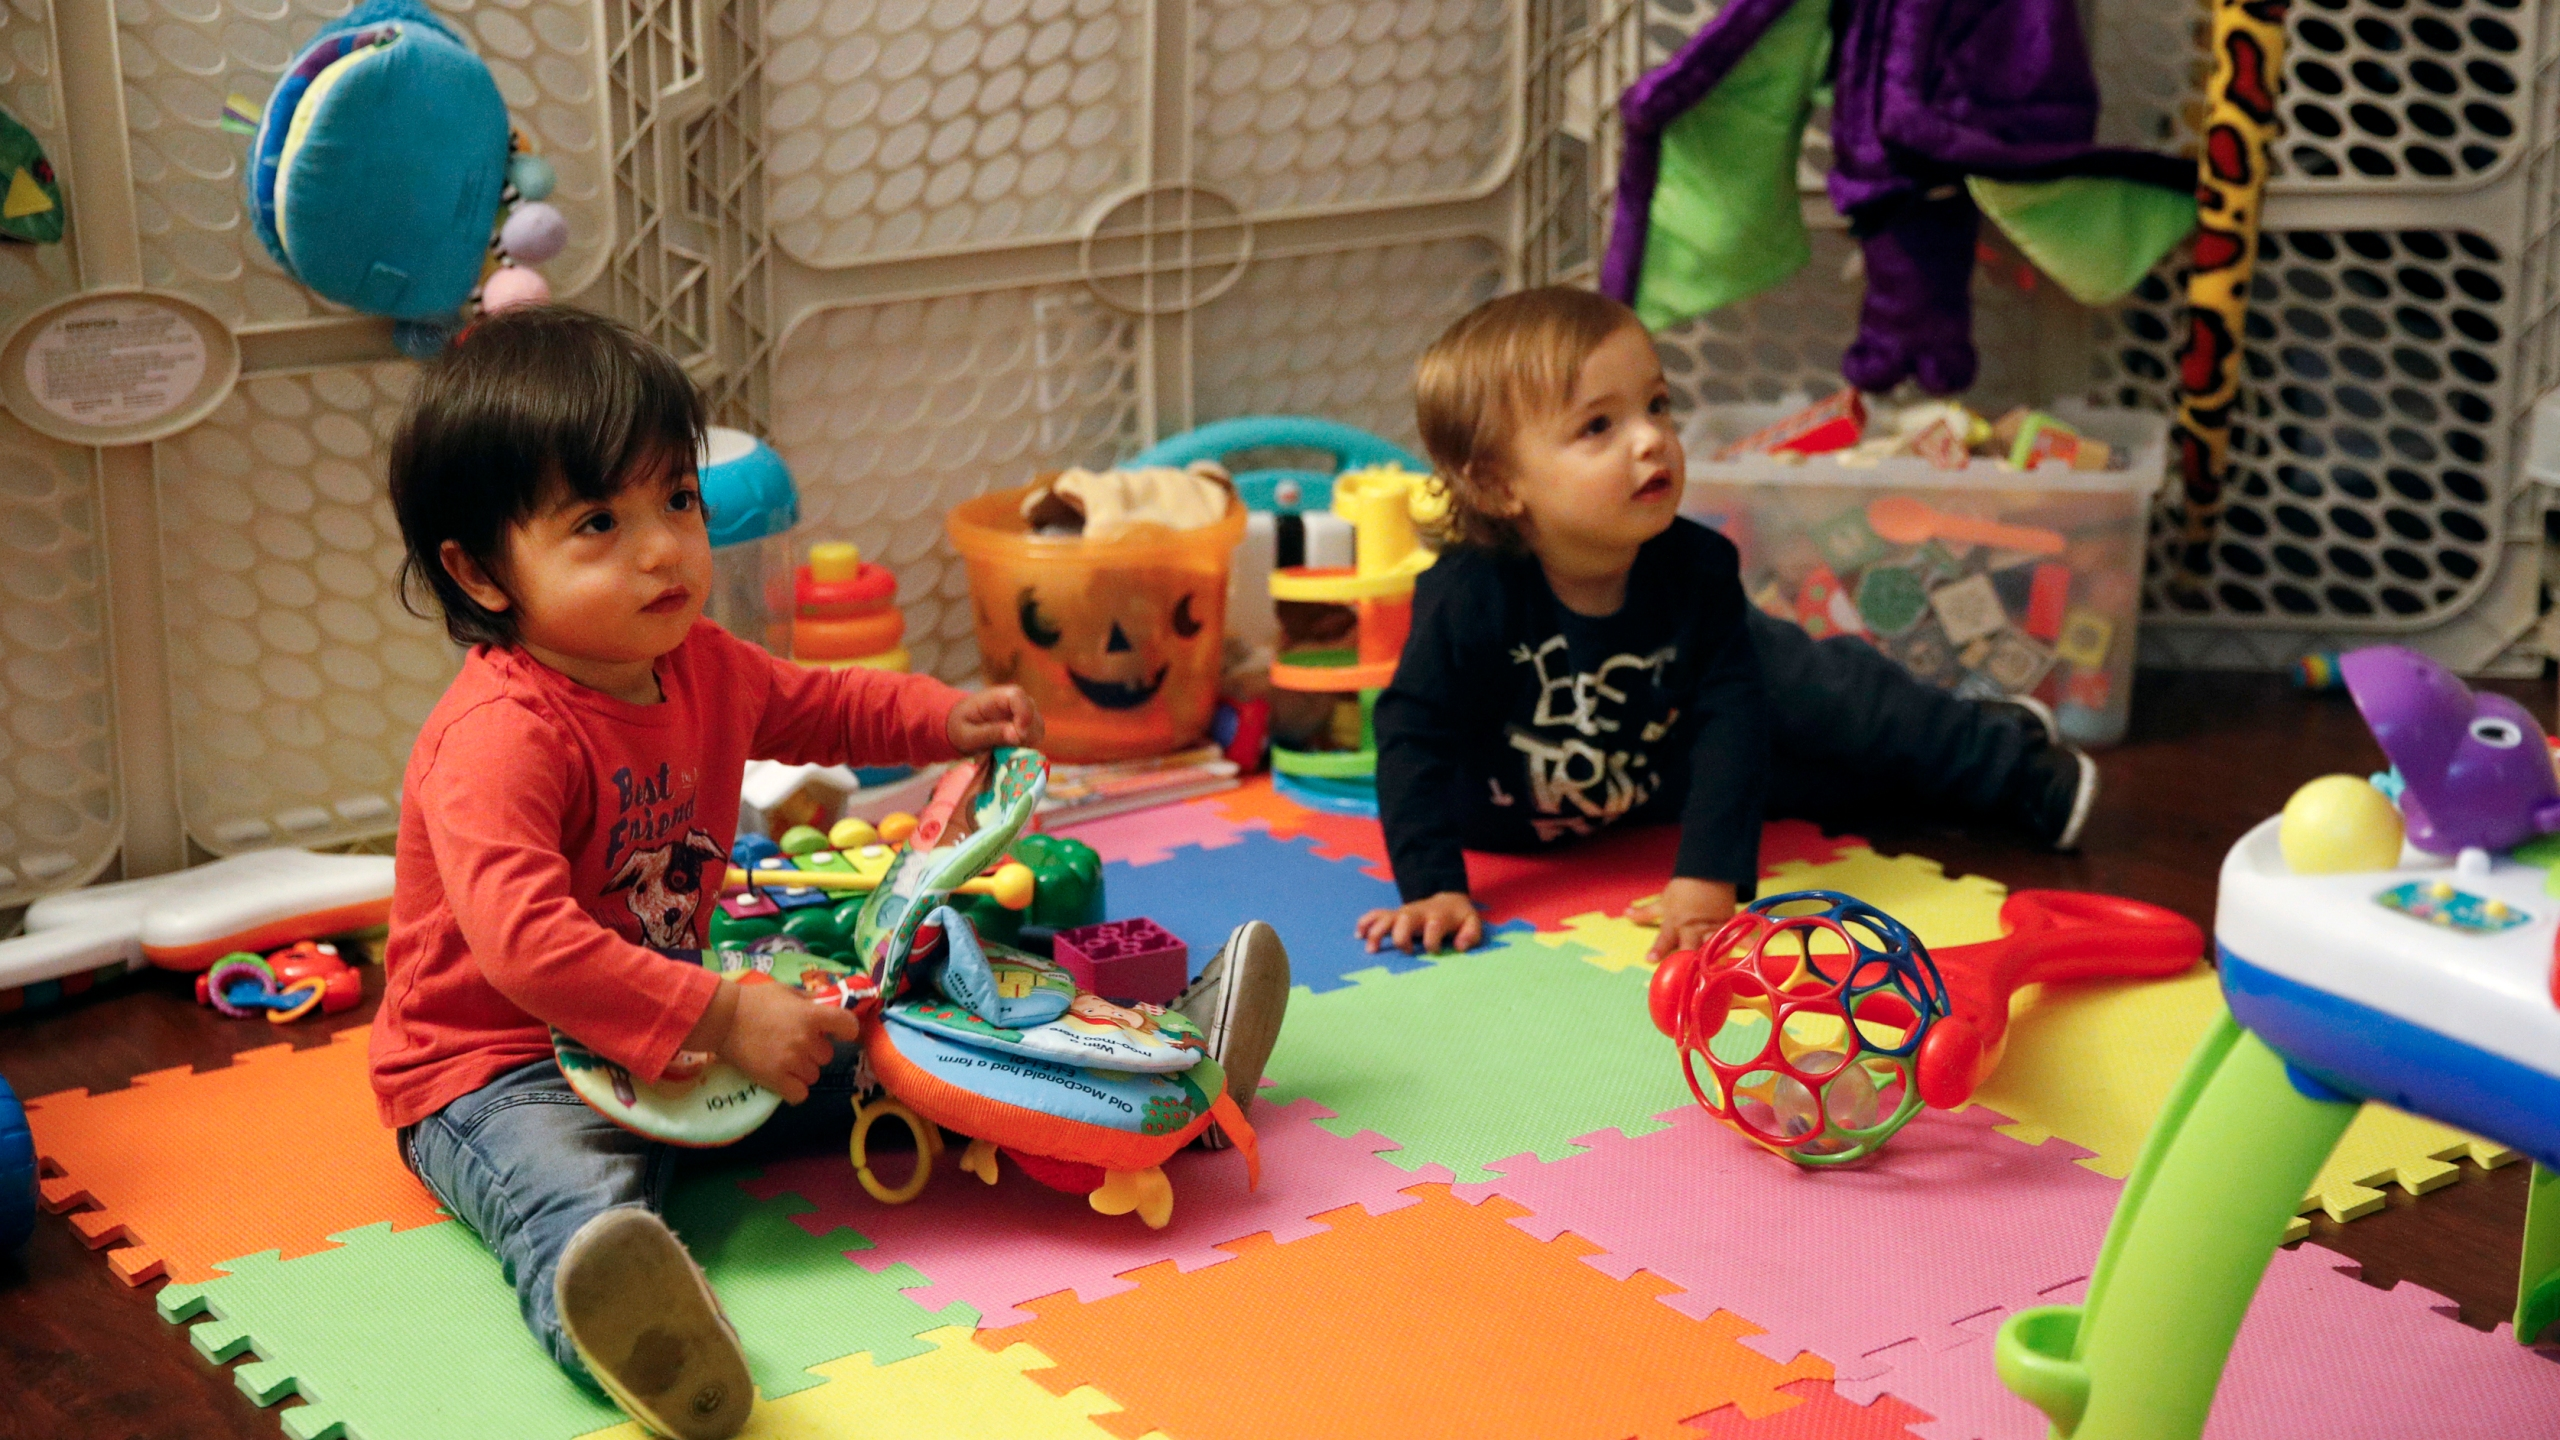 In this Jan. 23, 2018, file photo, 16-month-old Ethan Dvash-Banks, left, and his twin brother Aiden play in the living room of their apartment in Los Angeles. (AP Photo/Jae C. Hong, File)